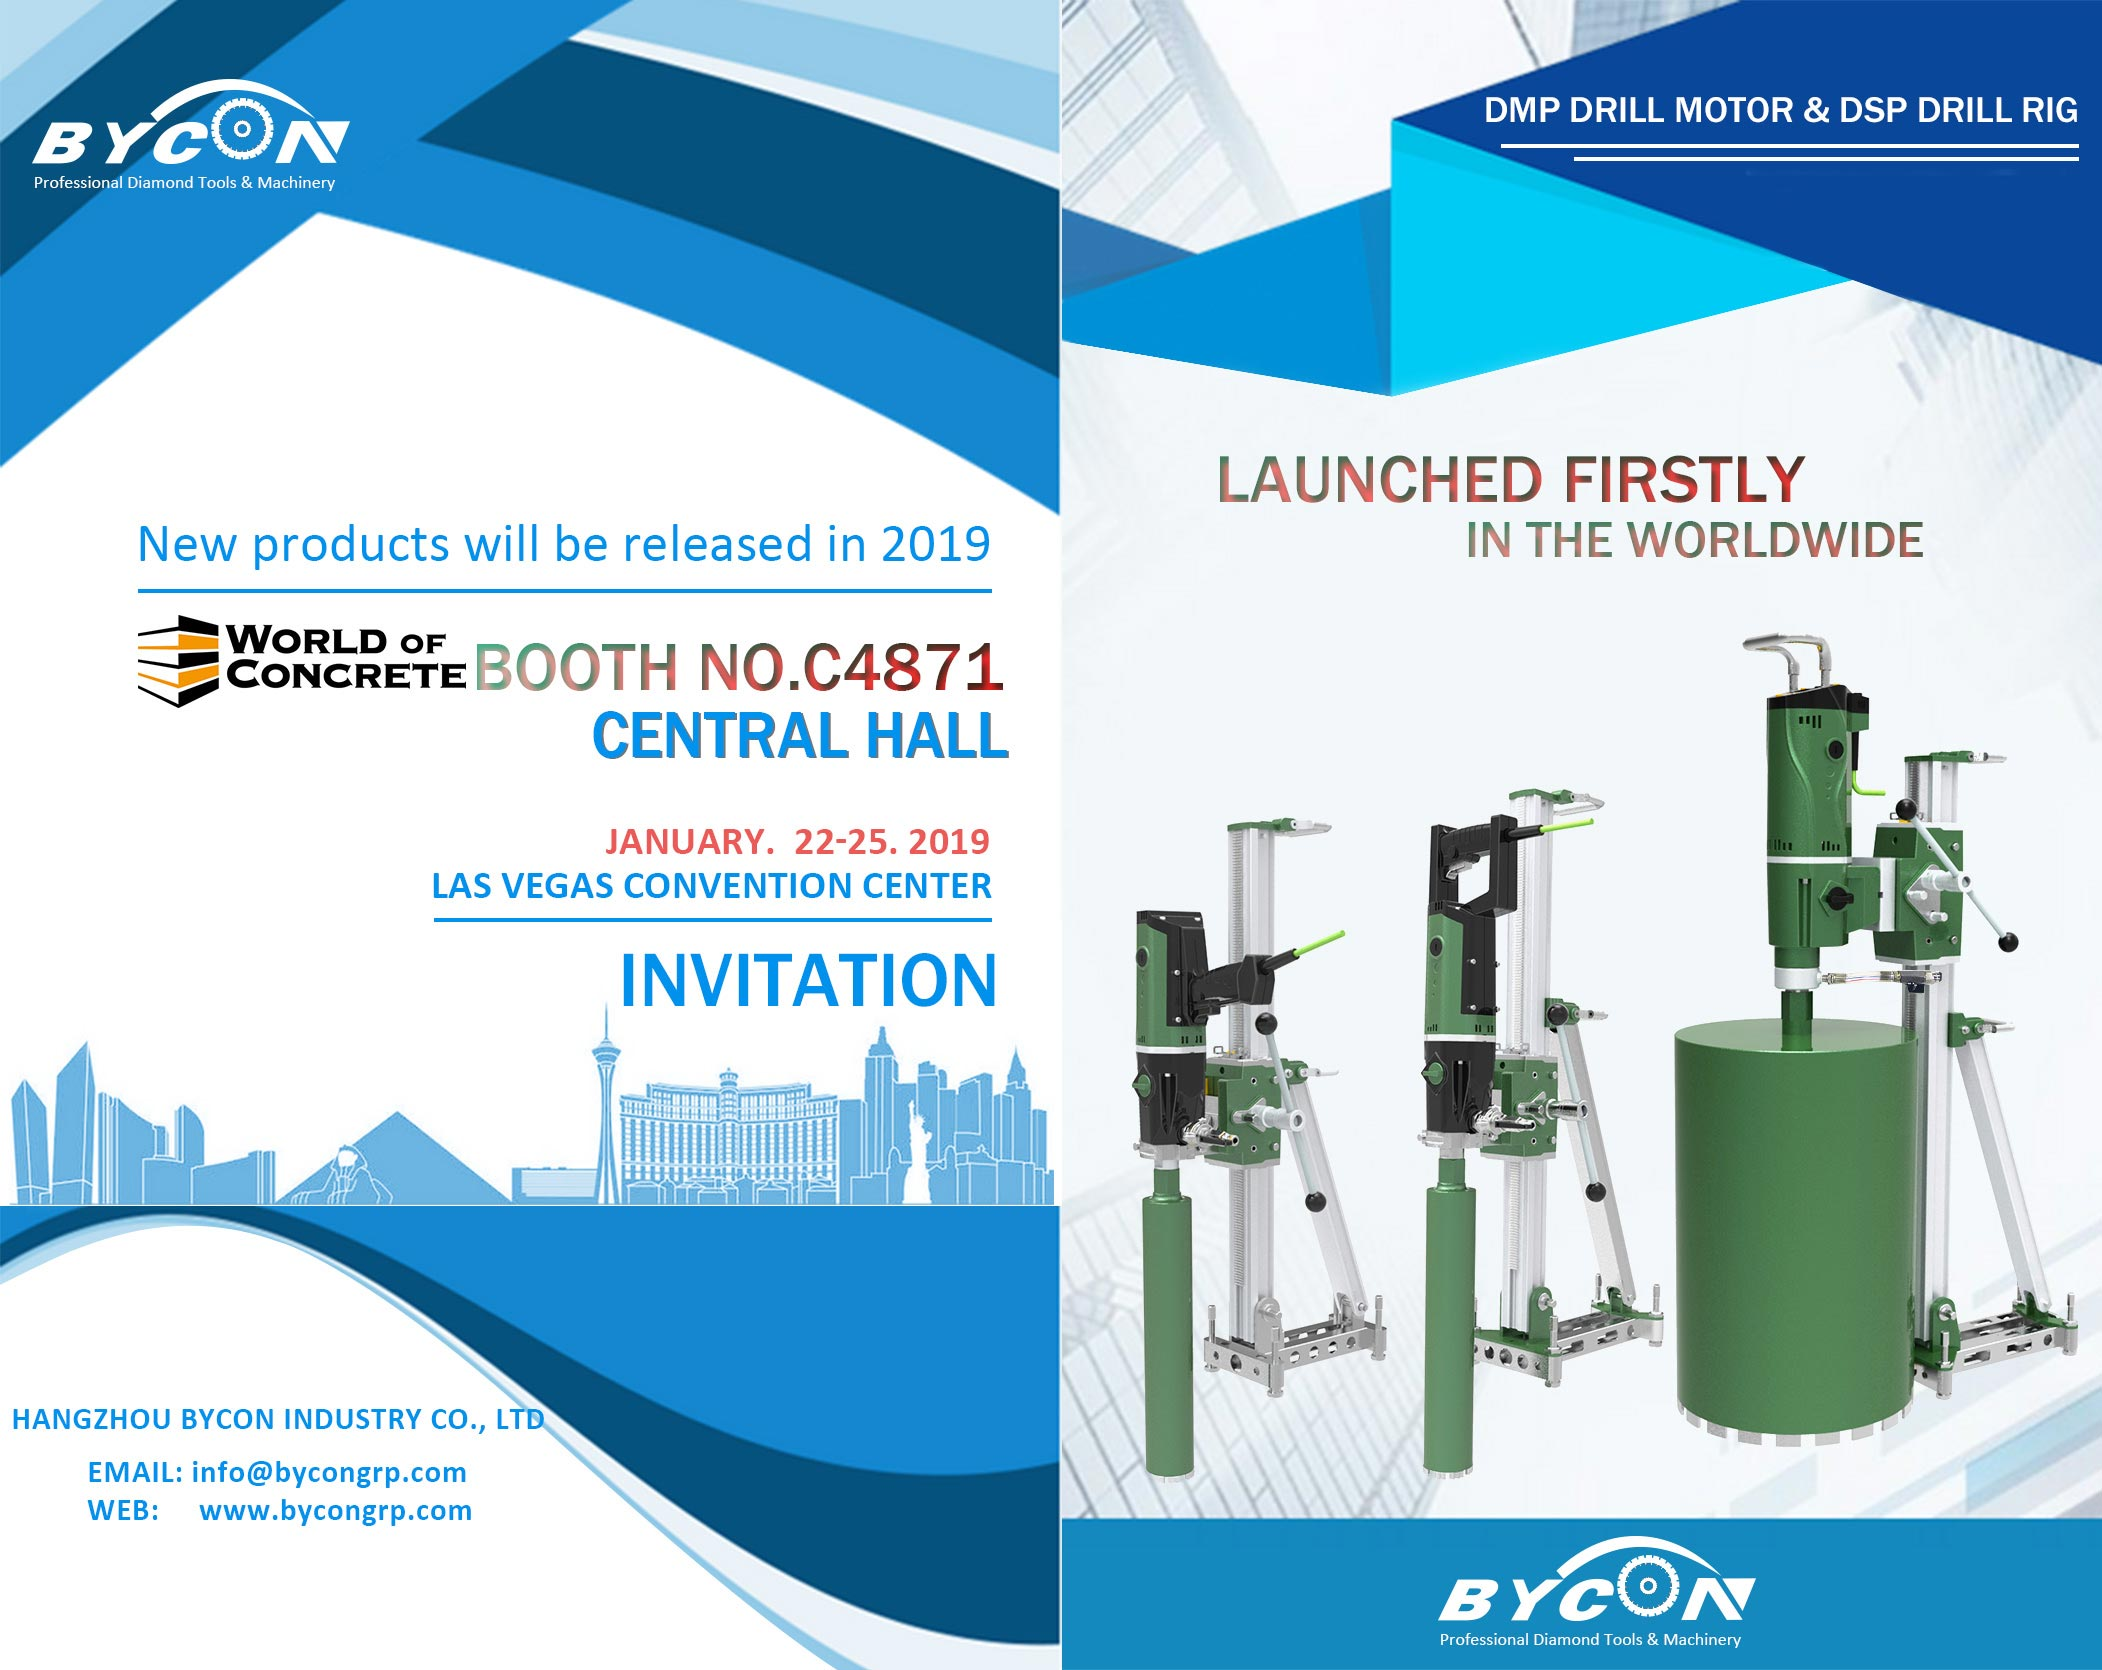 bycon-invites-you-to-2019-world-of-concrete